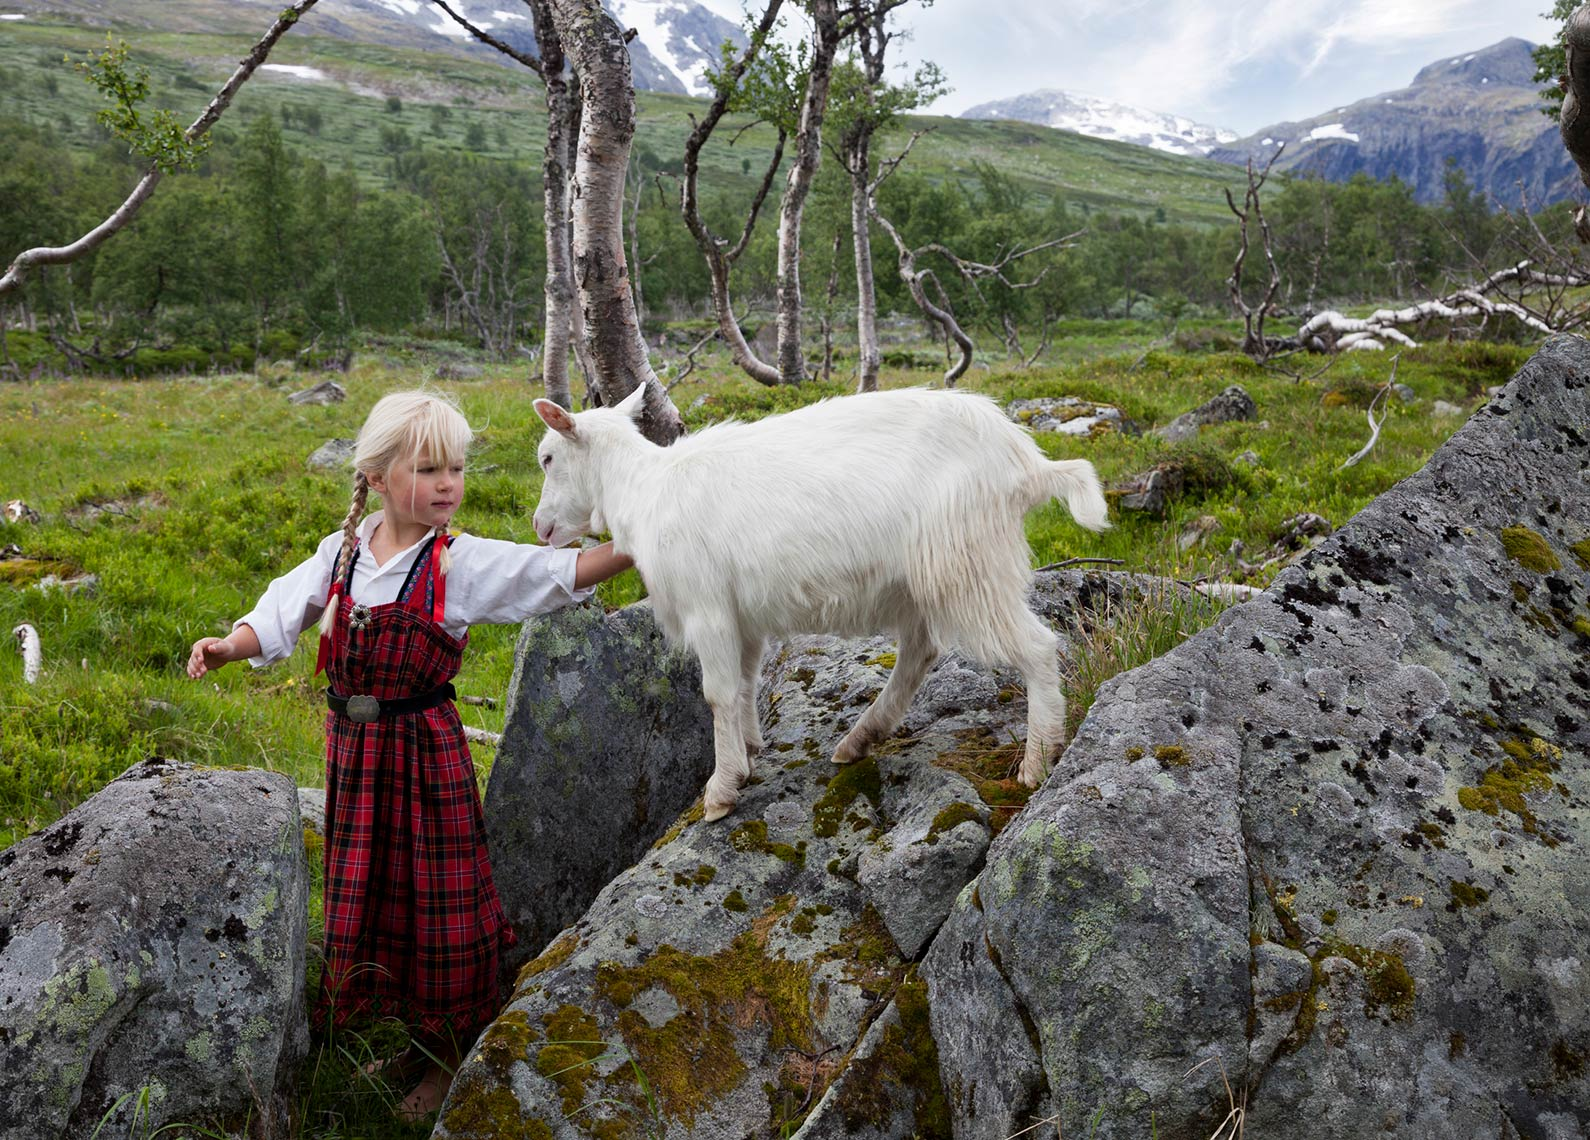 ANJA-AND-THE-GOAT_THE-TINY-WISH